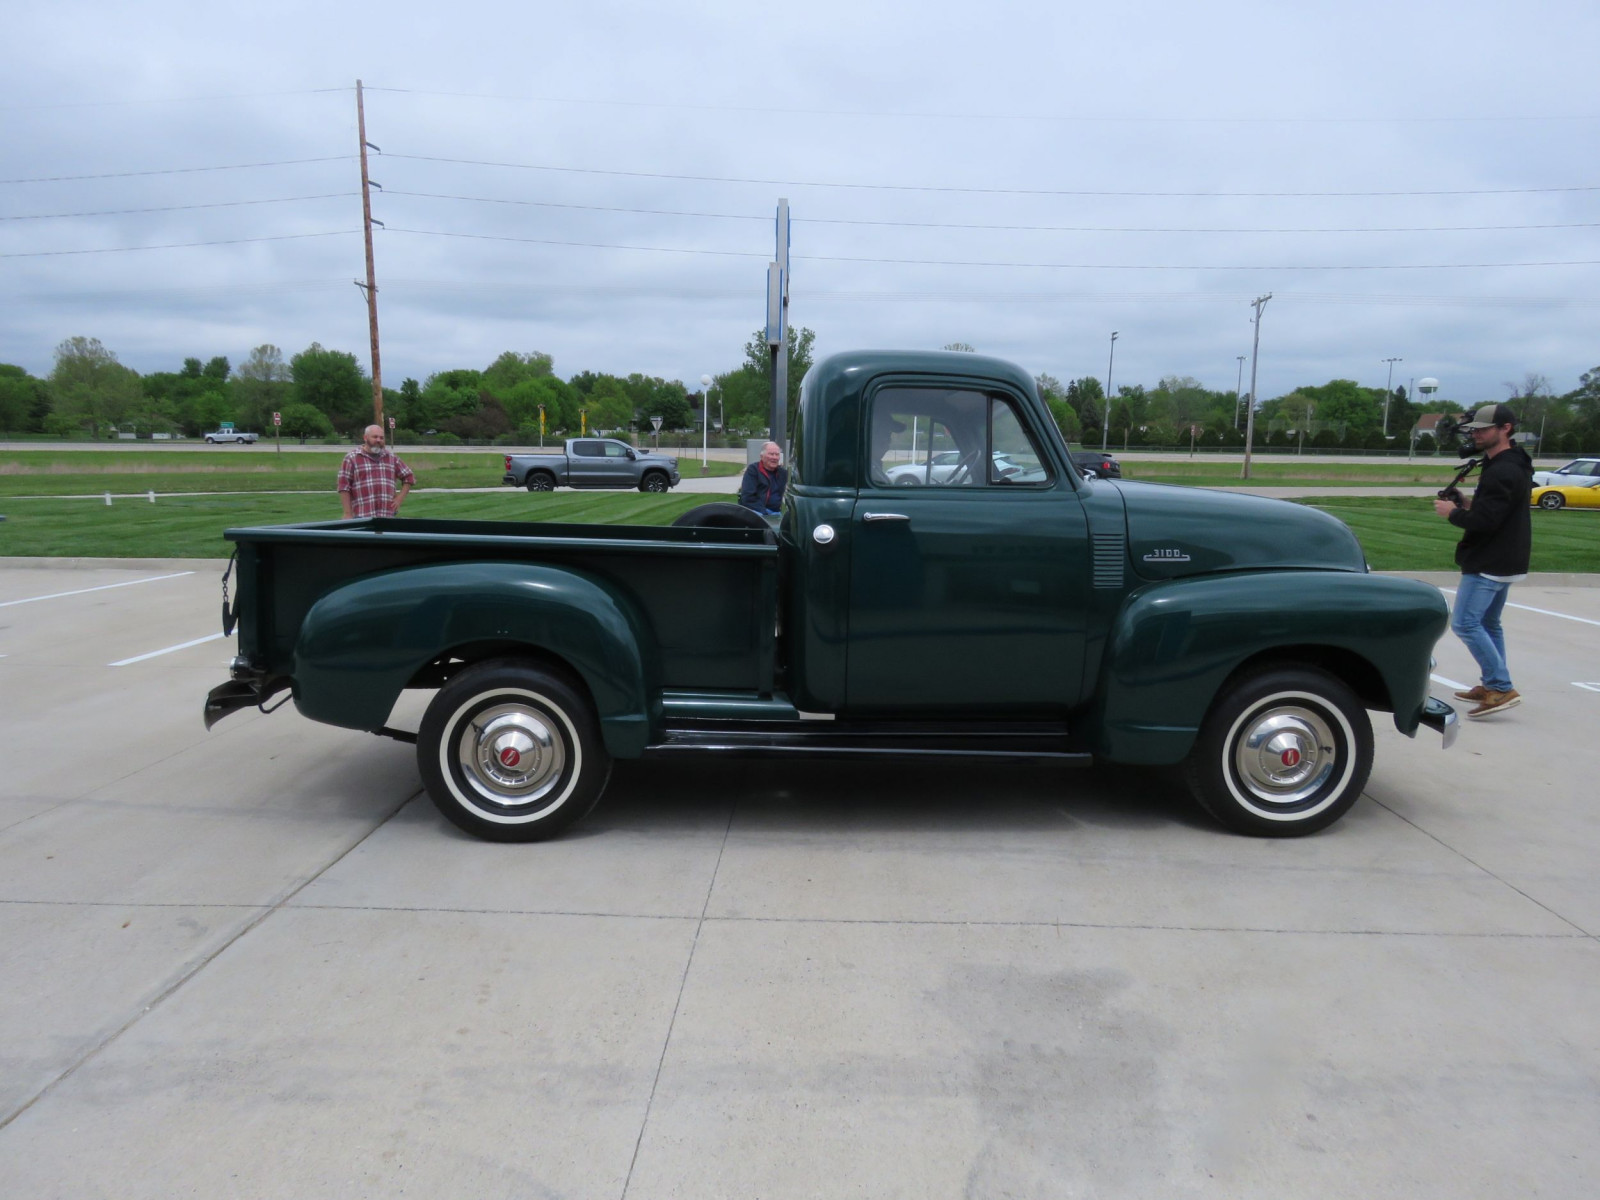 1954 Chevrolet 3100 Series Pickup - Image 6